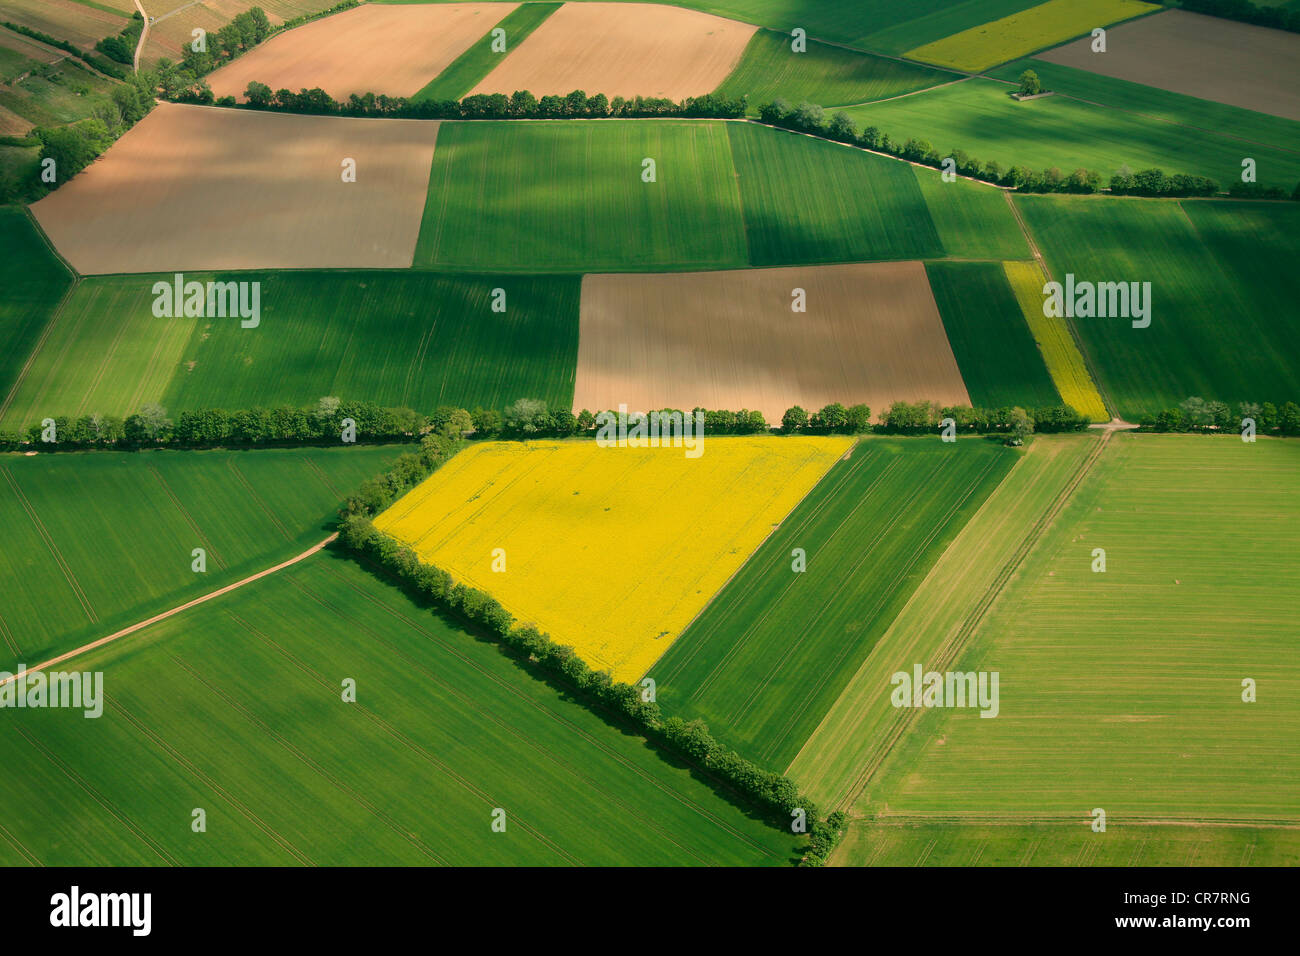 Aerial view, grain fields and canola fields separated by hedgerows, Erbes-Buedesheim, Rhineland-Palatinate, Germany, - Stock Image